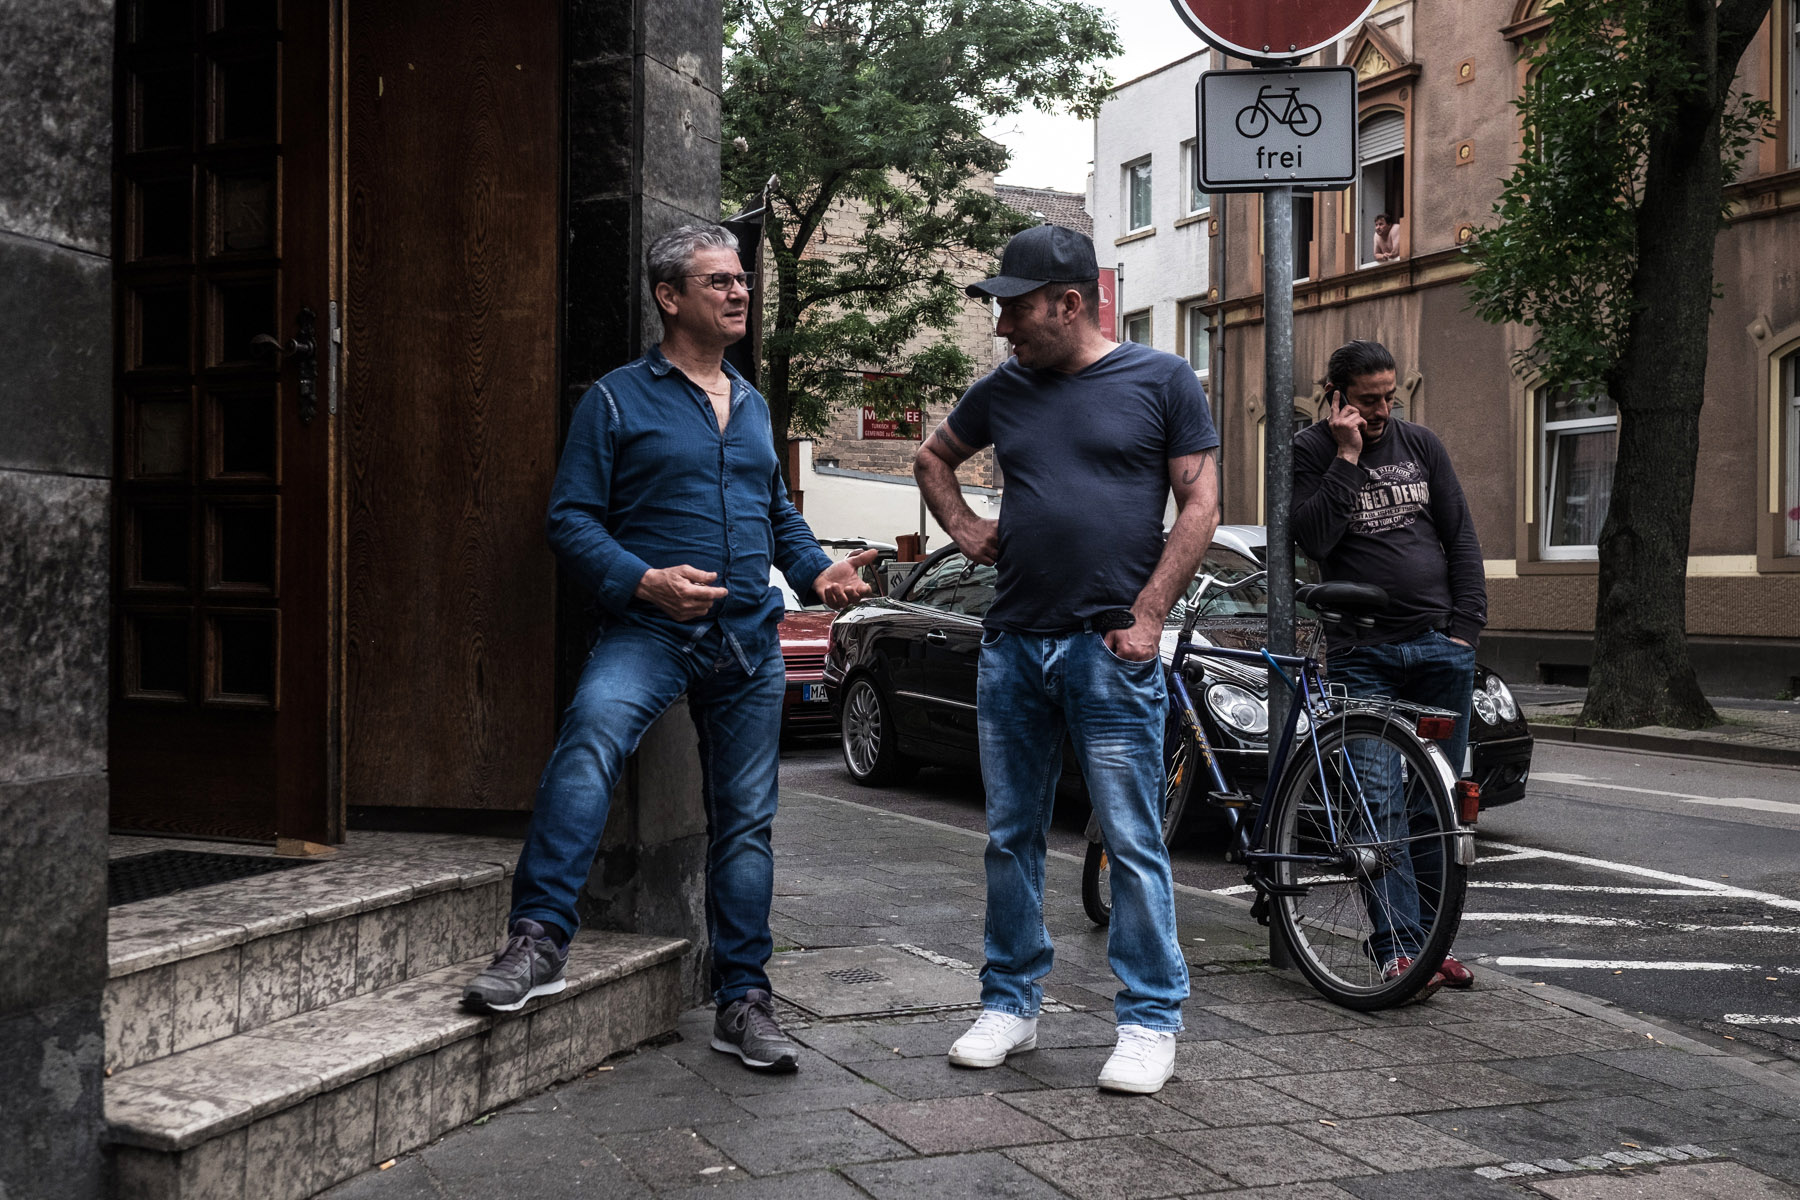 Two men are standing in front of an Italian pub in Offenbach's district Mathildenviertel while a third man is standing close behind them talking on his phone